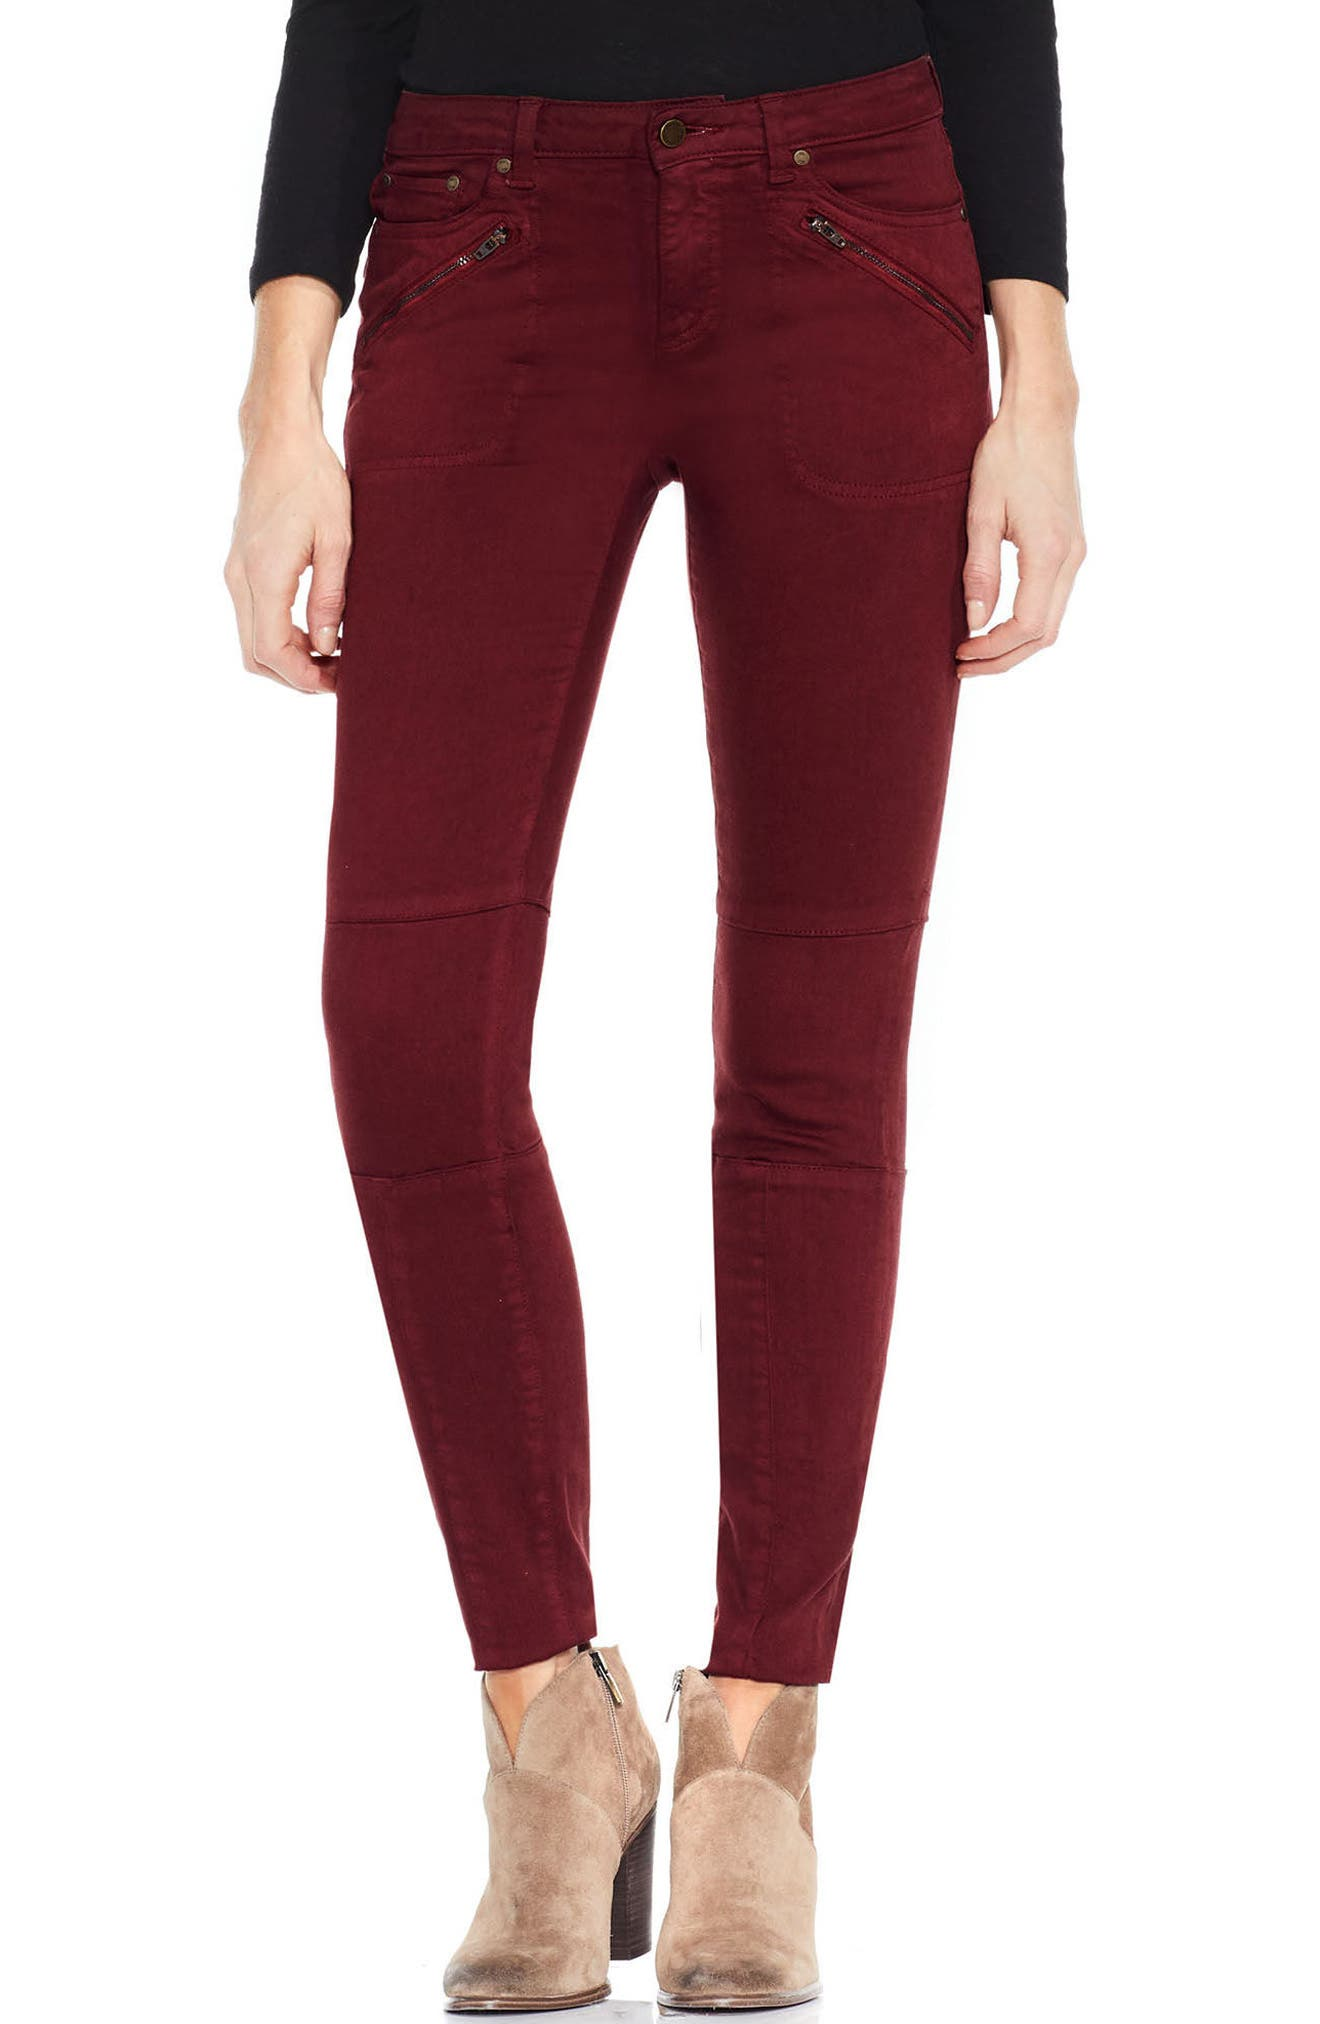 Alternate Image 1 Selected - Two by Vince Camuto D-Luxe Twill Moto Jeans